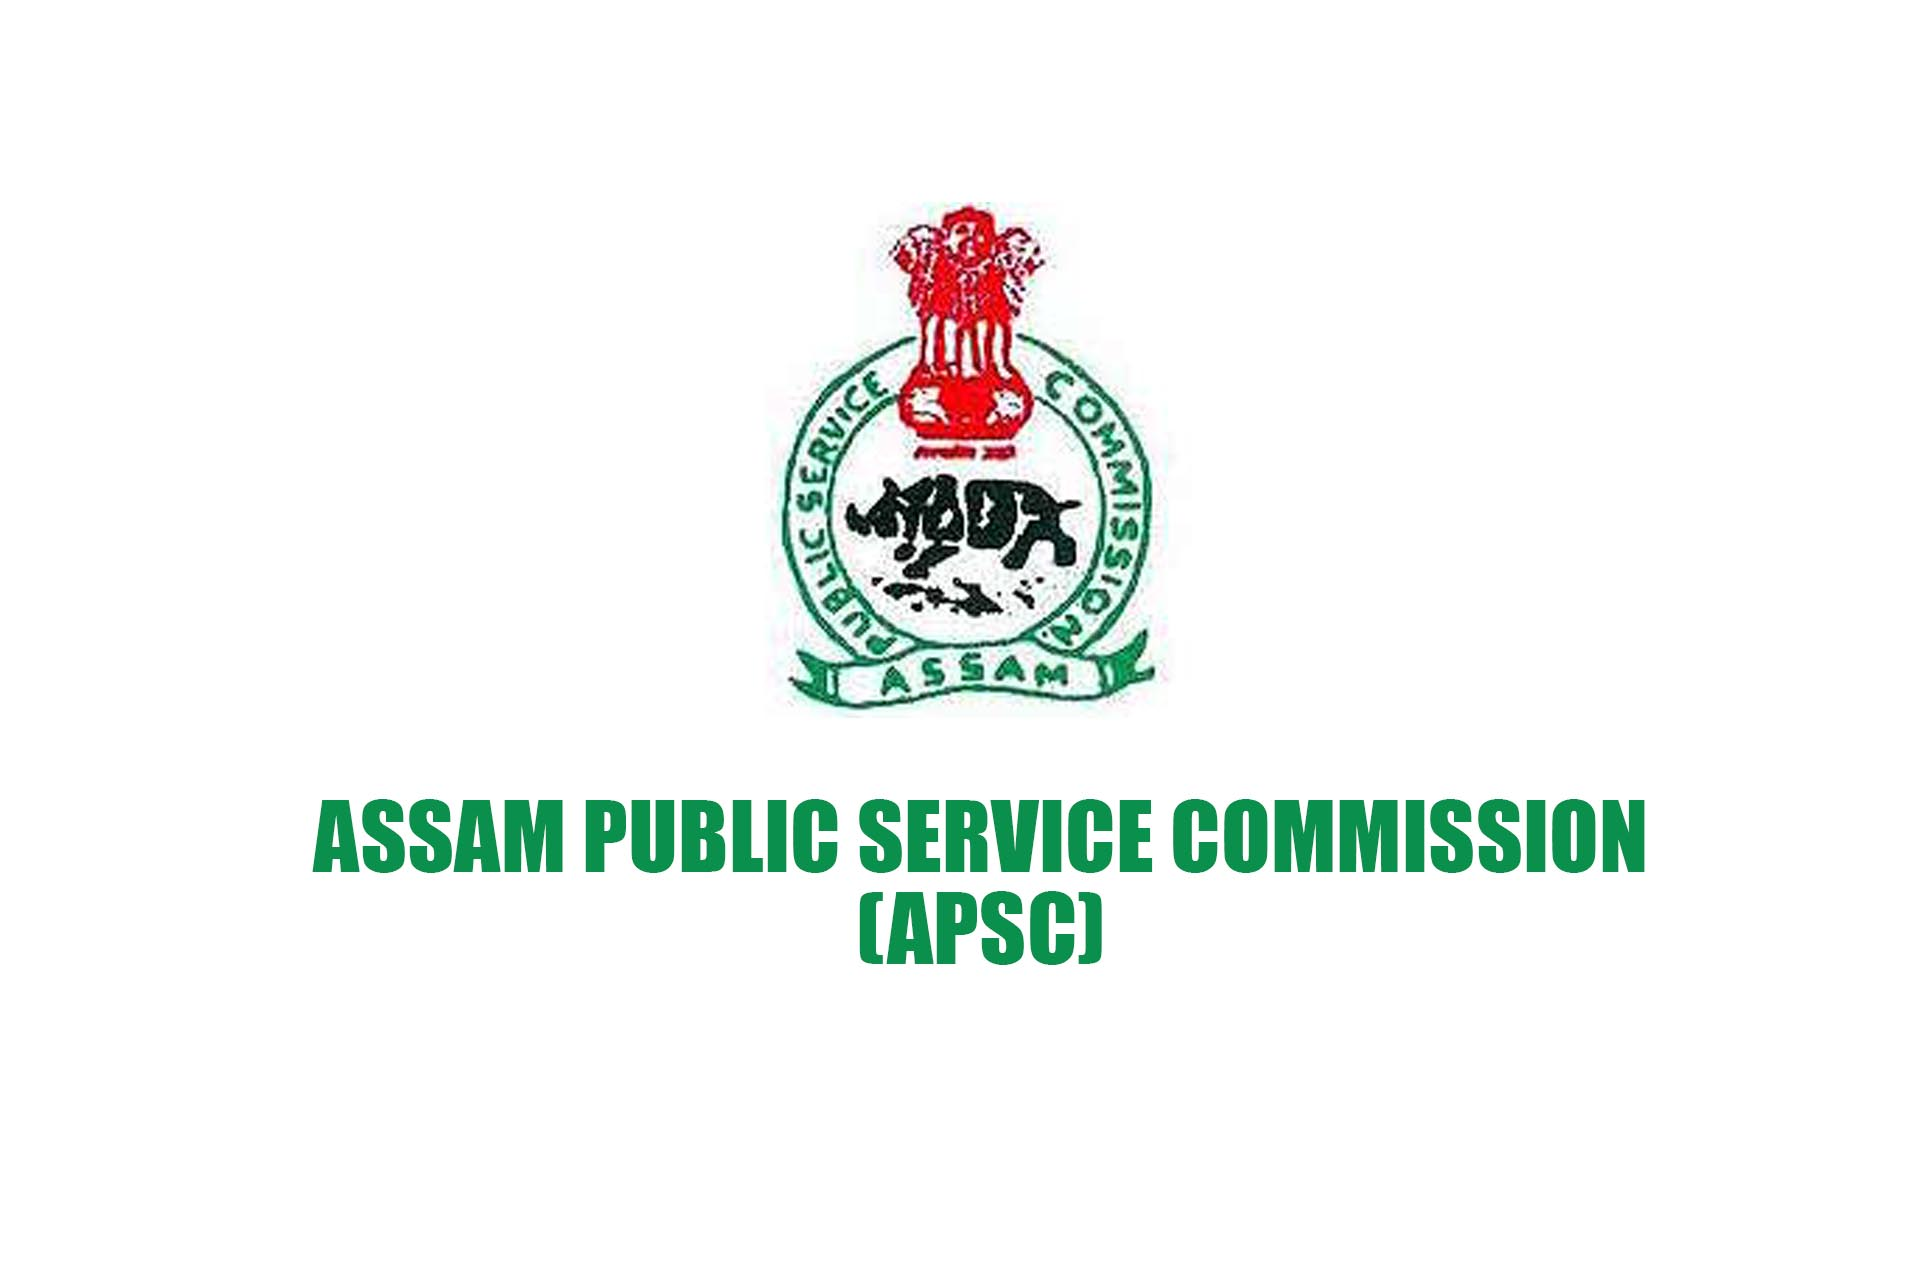 Andhra Pradesh Public Service Commission Is Hiring 22 Food Safety Officers - Apply Online